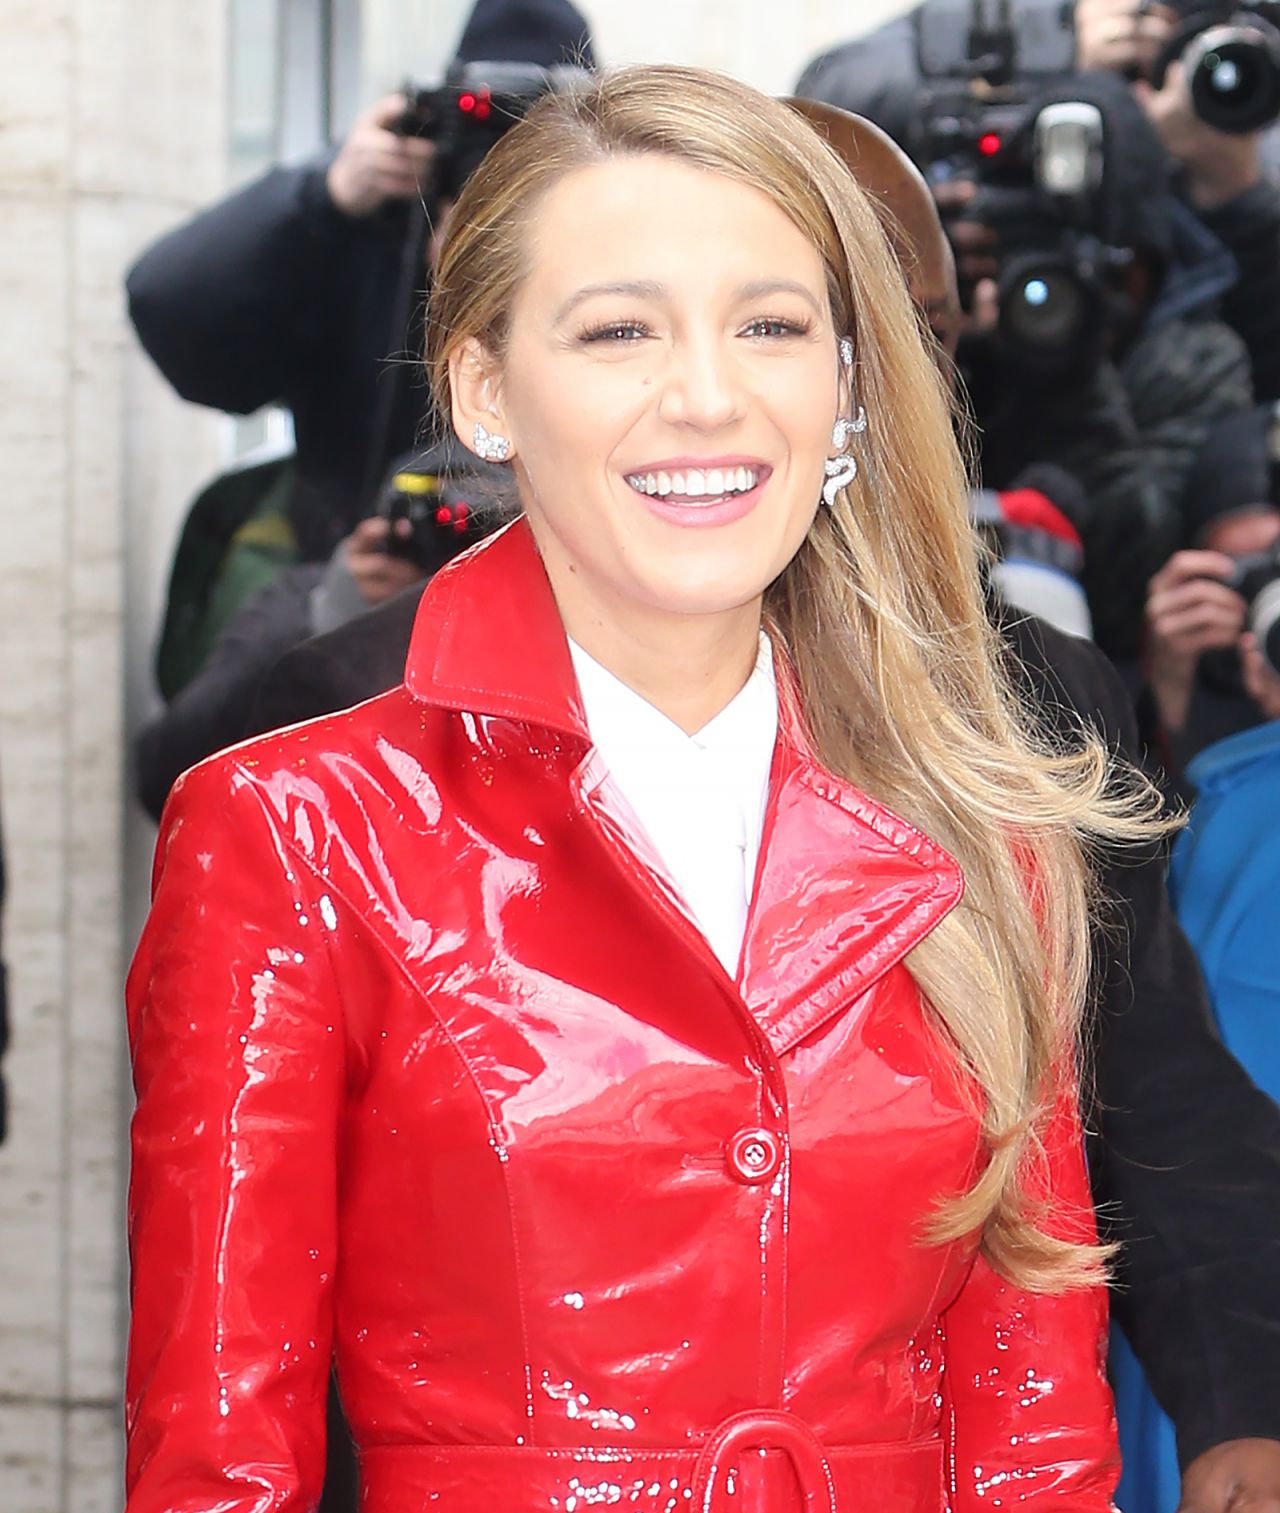 Blake Lively - Arrives at the Michael Kors Show, NYFW 2018